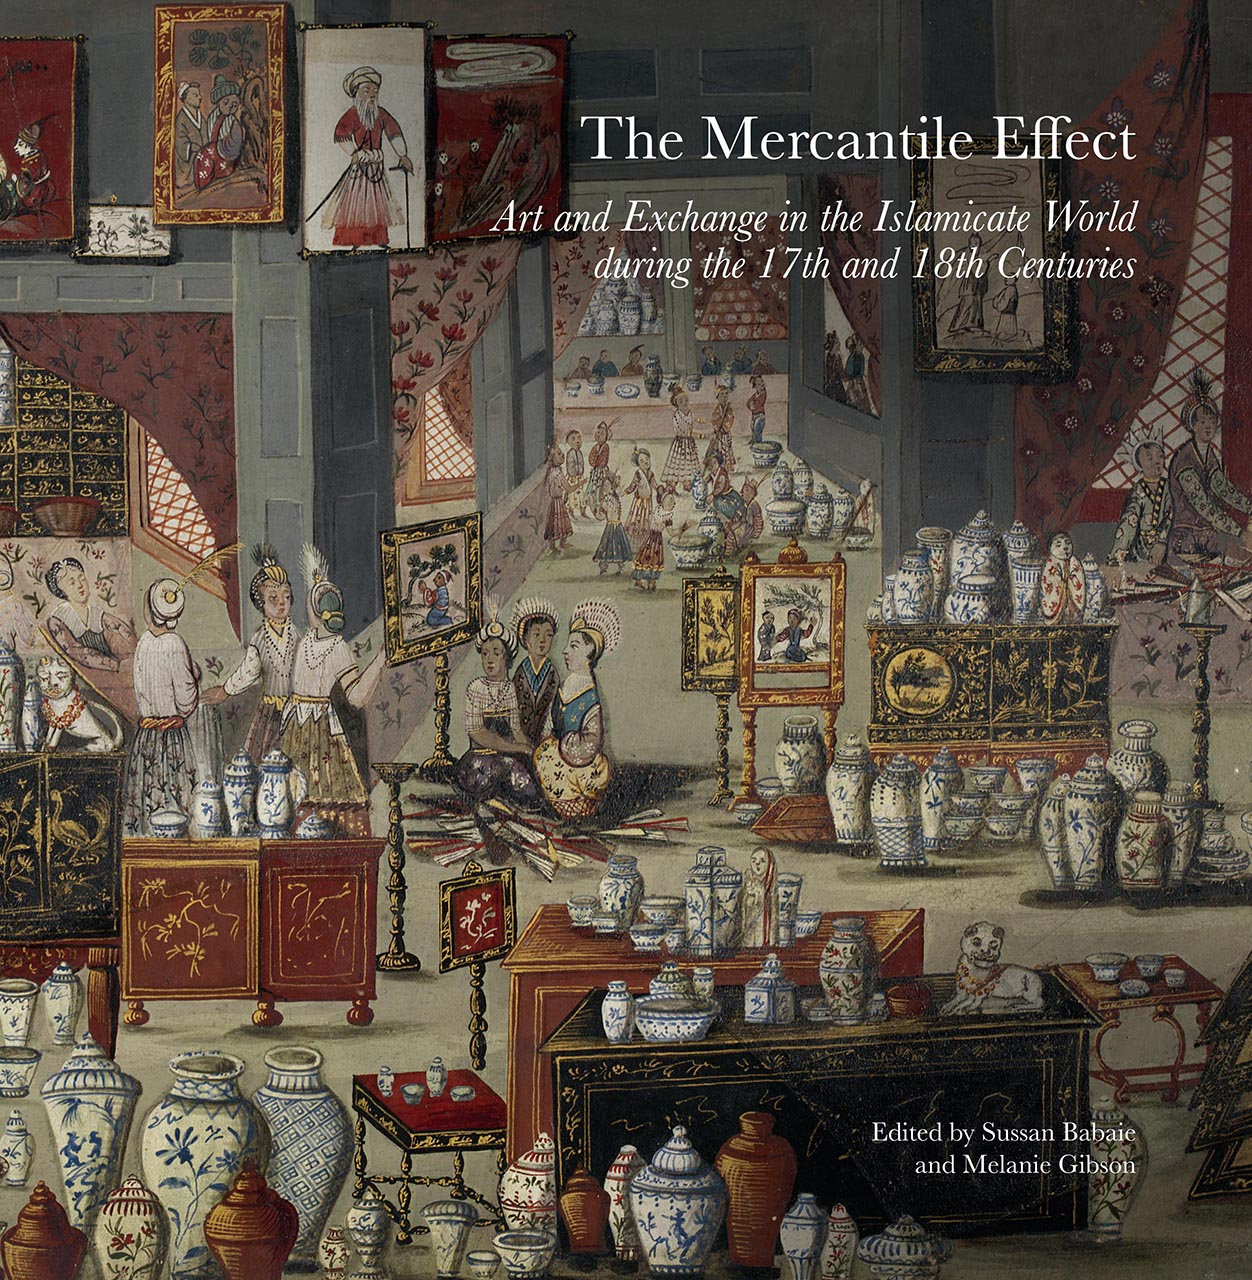 The Mercantile Effect: On Art and Exchange in the Islamicate